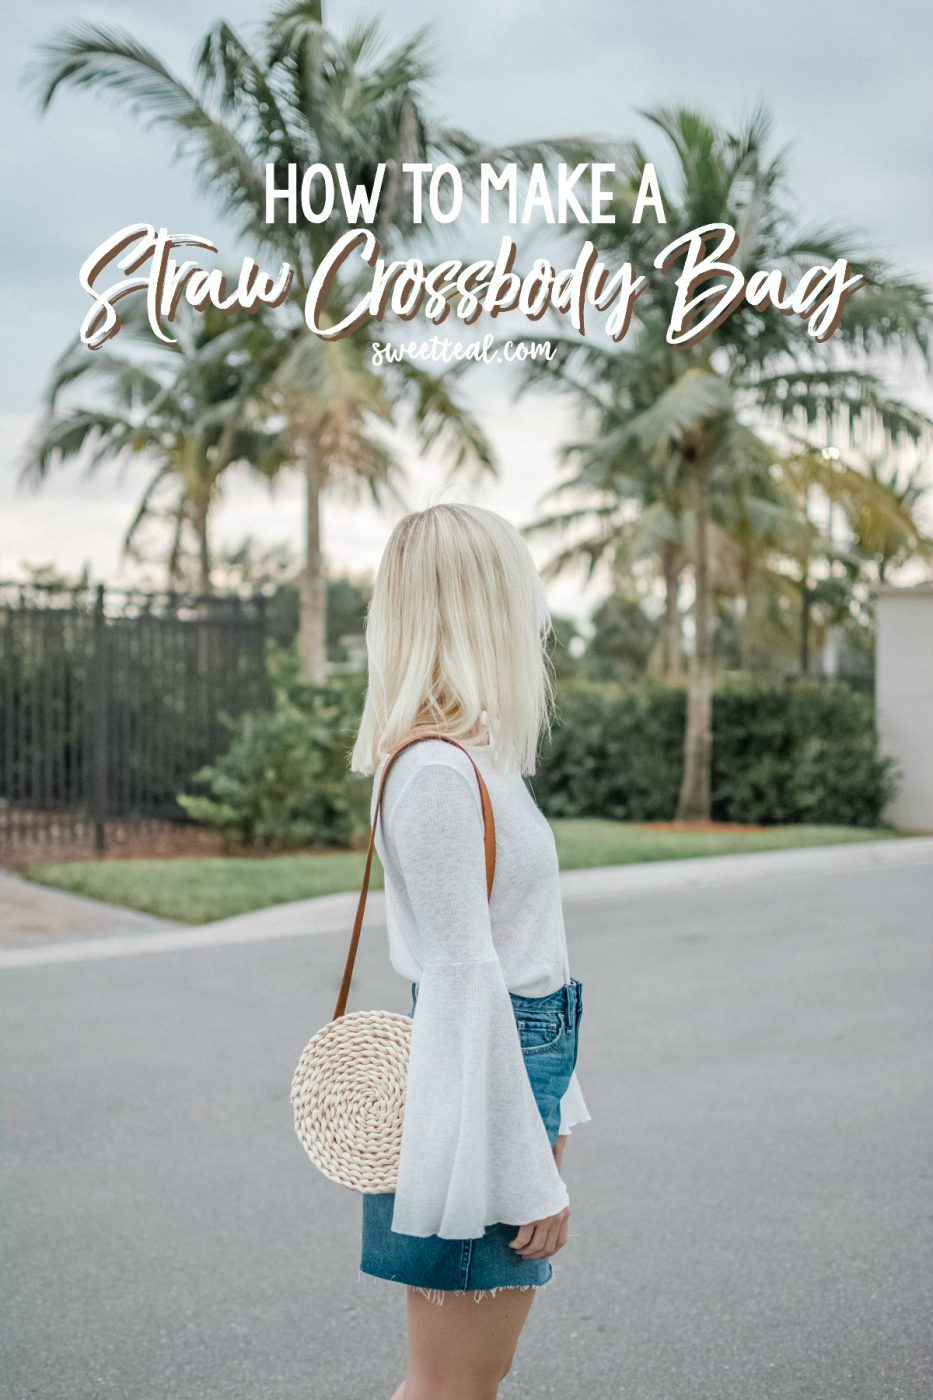 How To Make a Straw Crossbody Bag - Sweet Teal